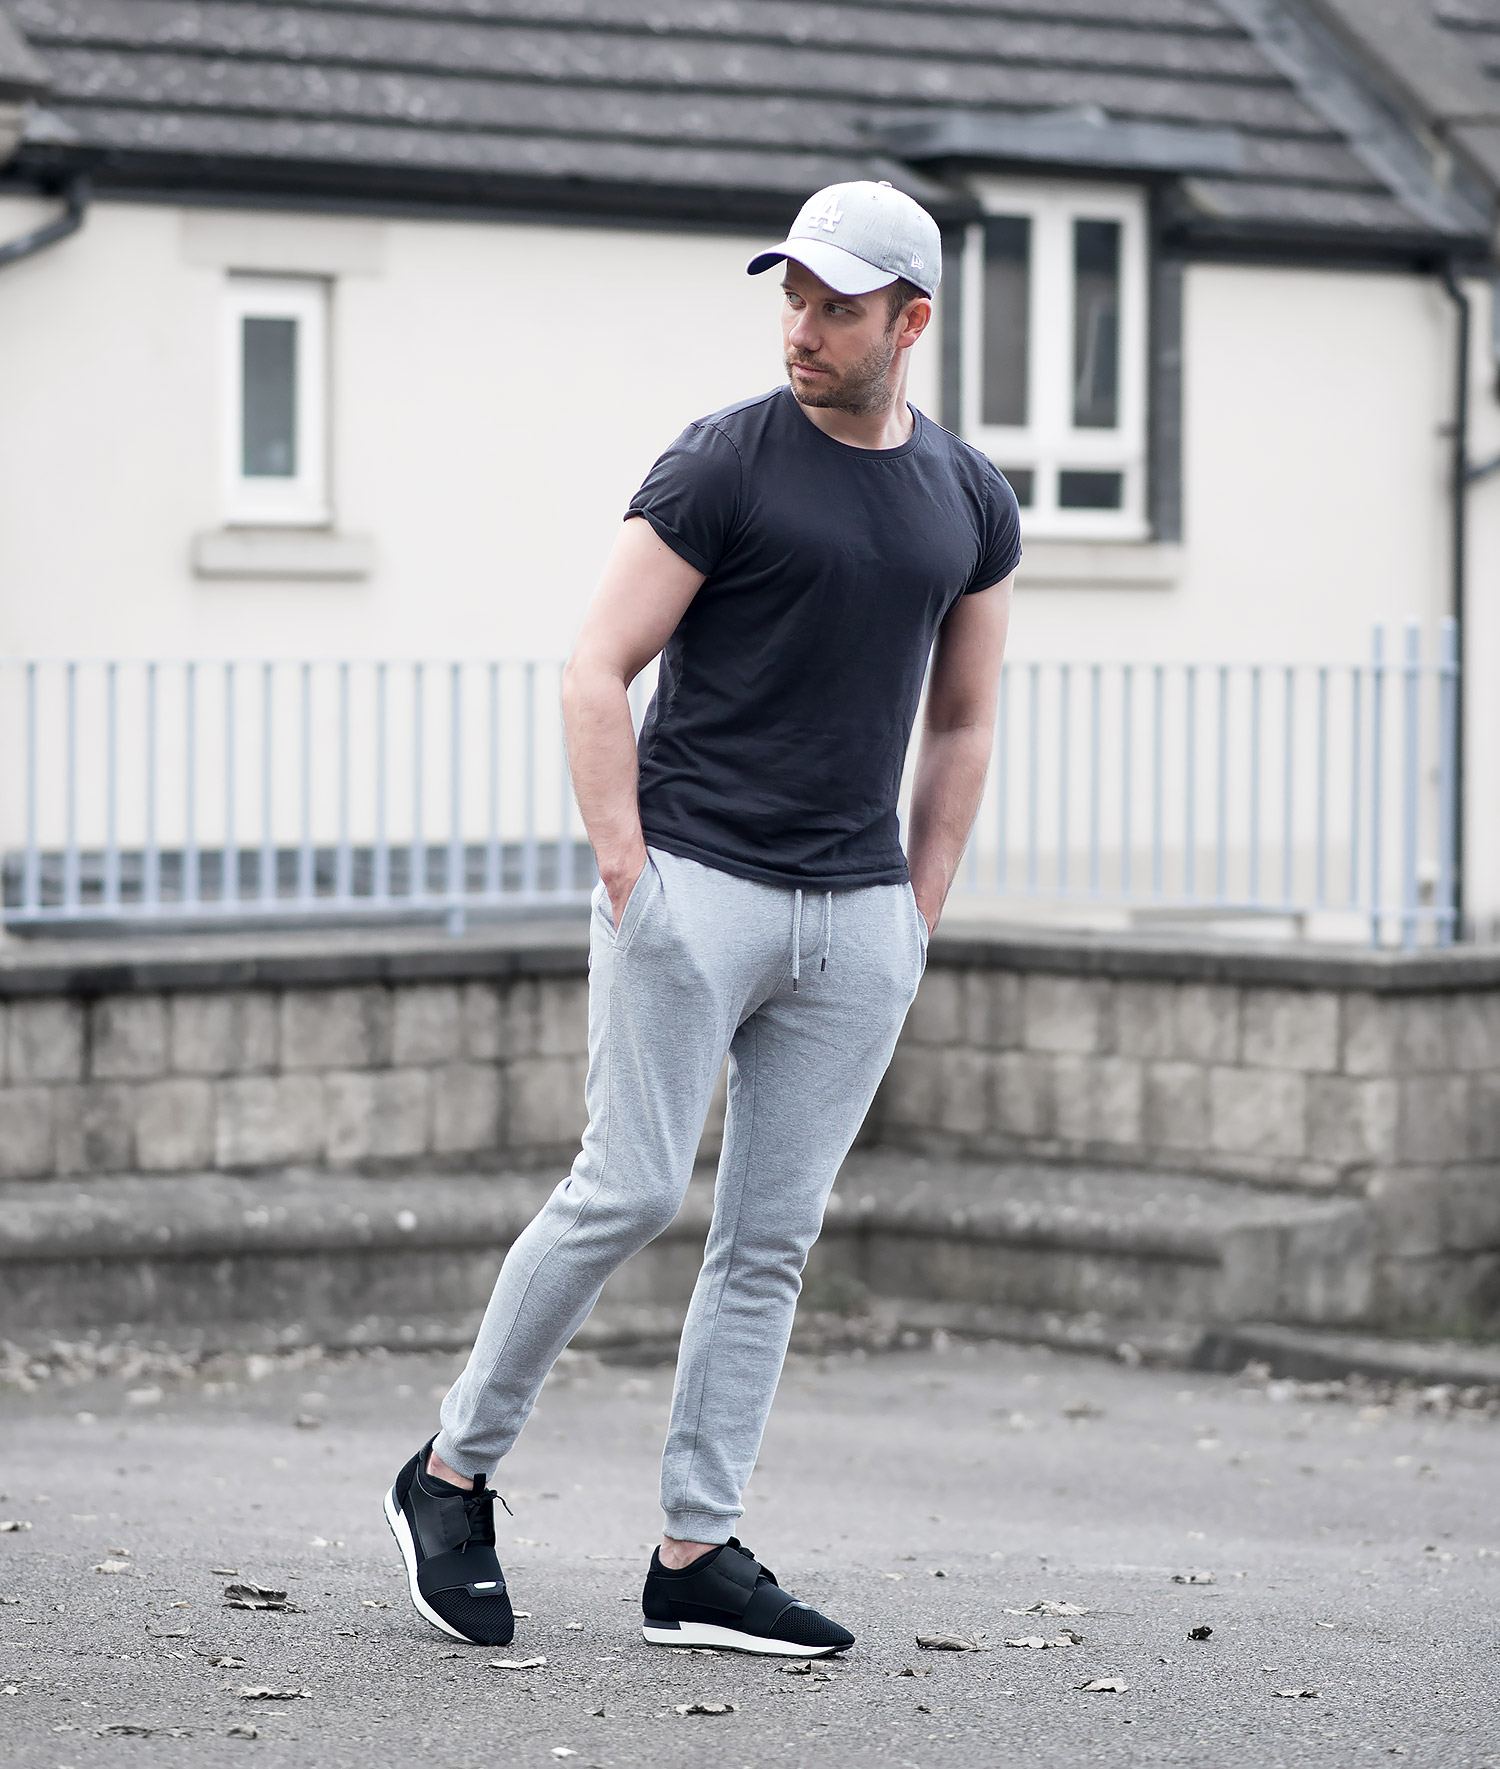 Topman Joggers And Balenciaga Race Runners Outfit